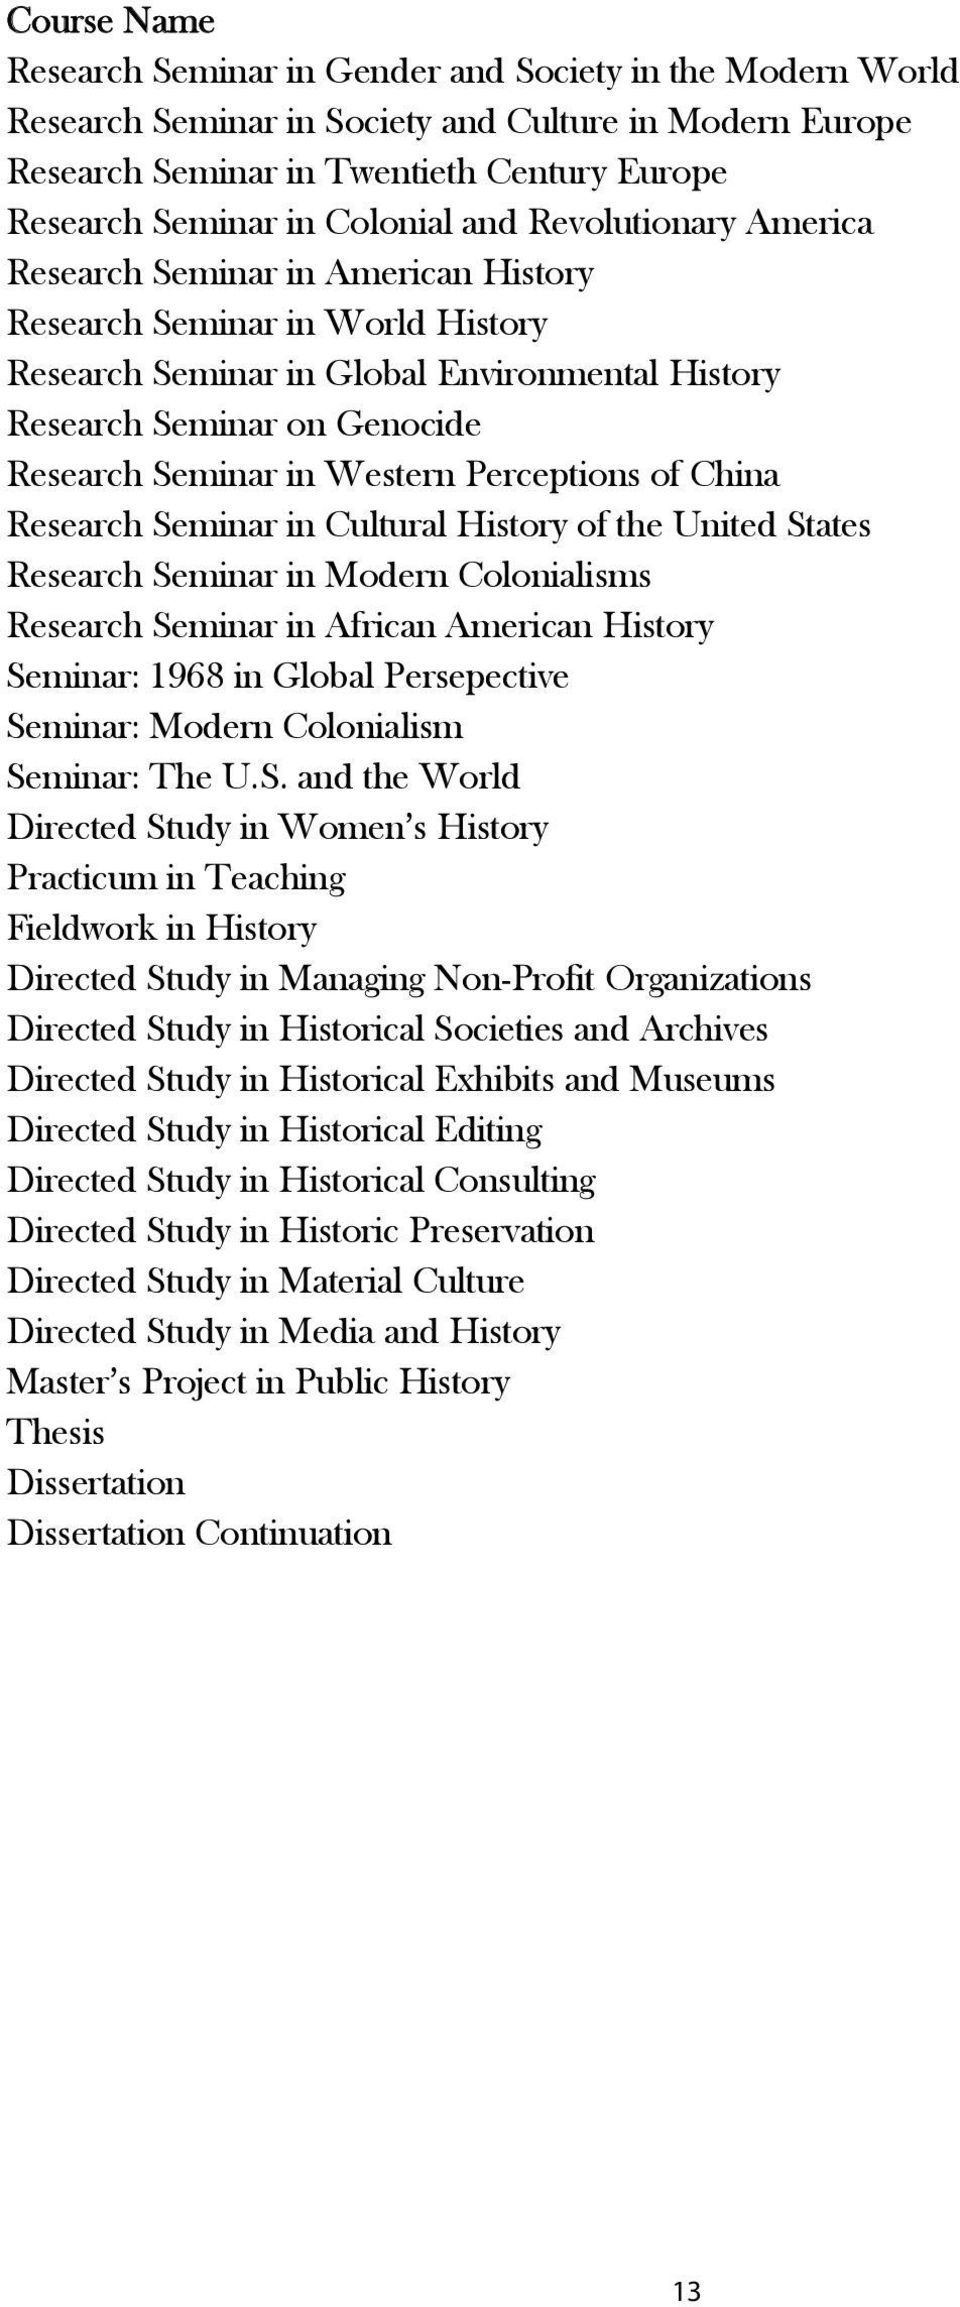 Seminar in Western Perceptions of China Research Seminar in Cultural History of the United States Research Seminar in Modern Colonialisms Research Seminar in African American History Seminar: 1968 in